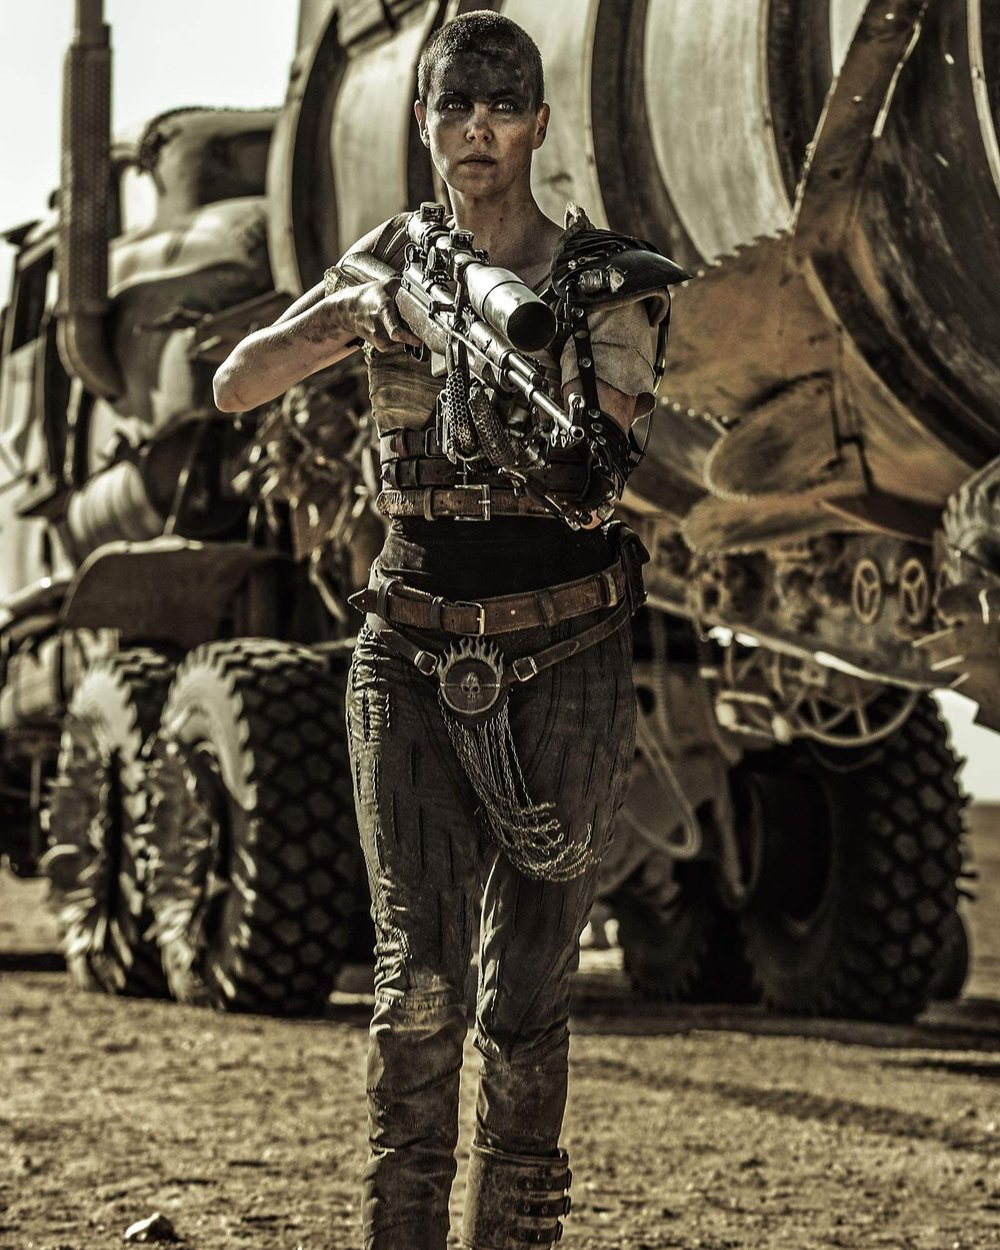 MARIO - Imperator Furiosa (Mad Max: Fury Road) – She's intimidating, respected and just an overall badass character that doesn't take s#*t from anyone and knows how to deal with anything standing in her way. In my opinion, she totally stole the show from Tom Hardy in Mad Max: Fury Road.